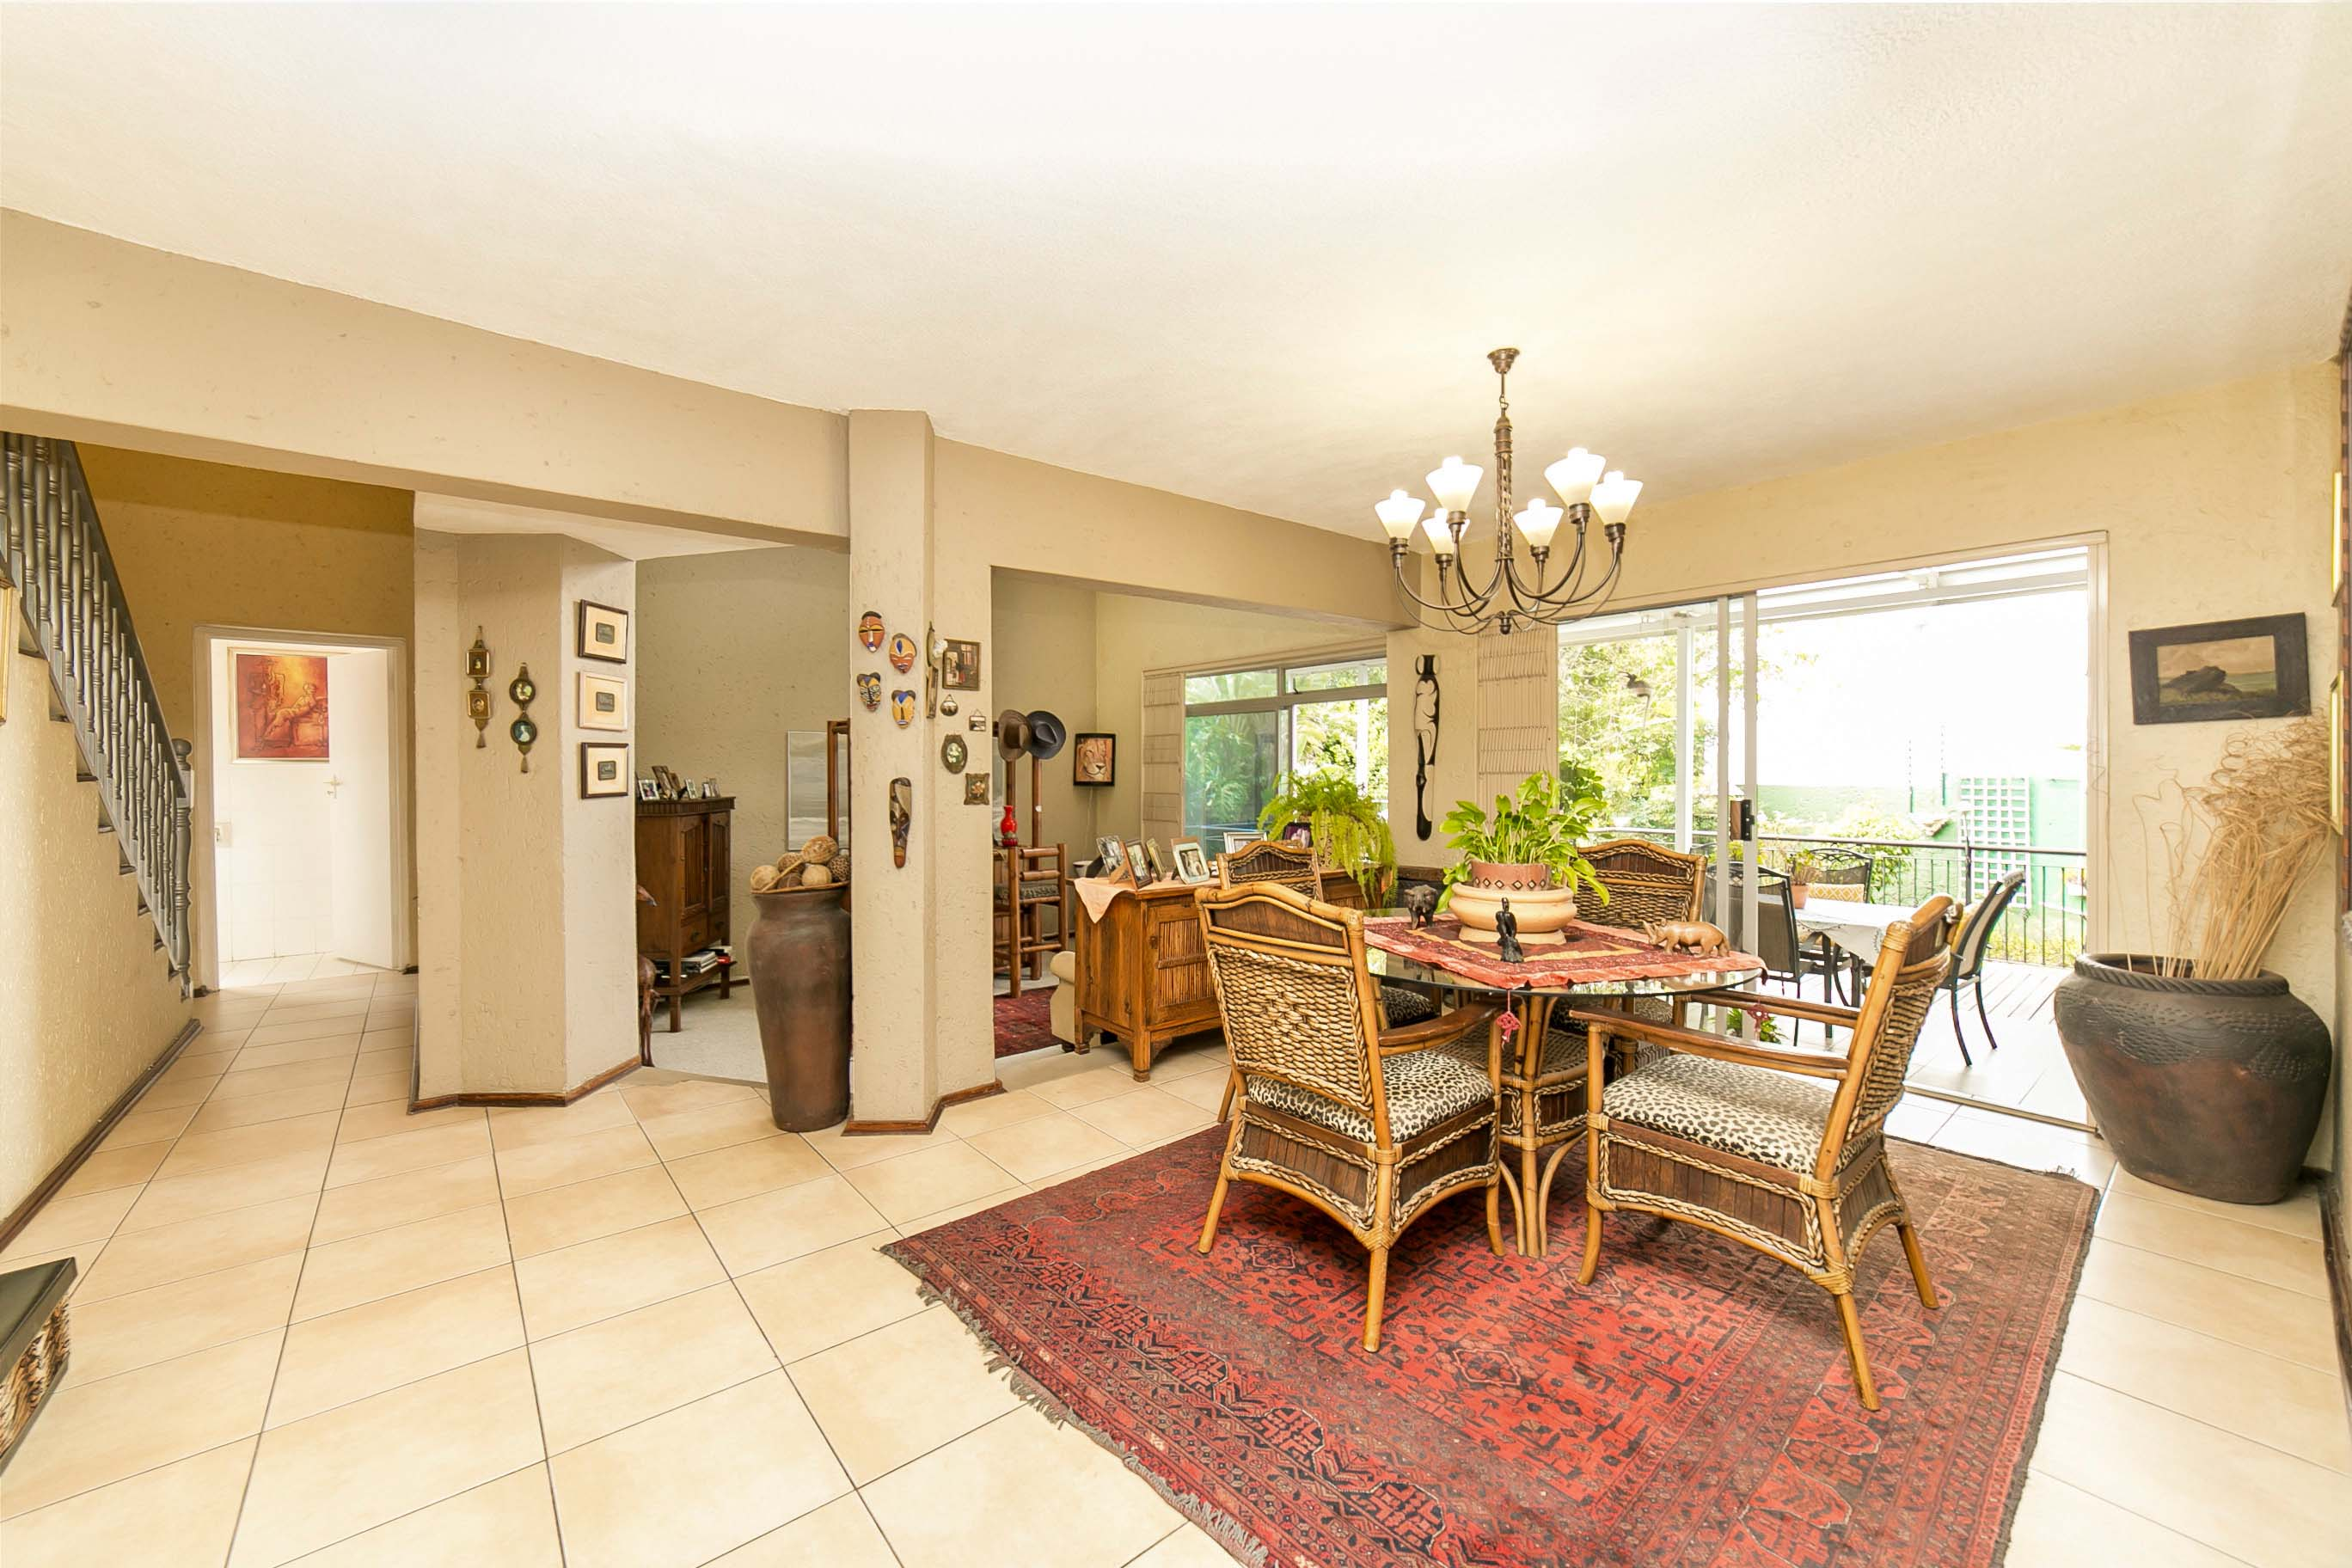 4 Bedroom House for sale in Lonehill ENT0082001 : photo#5